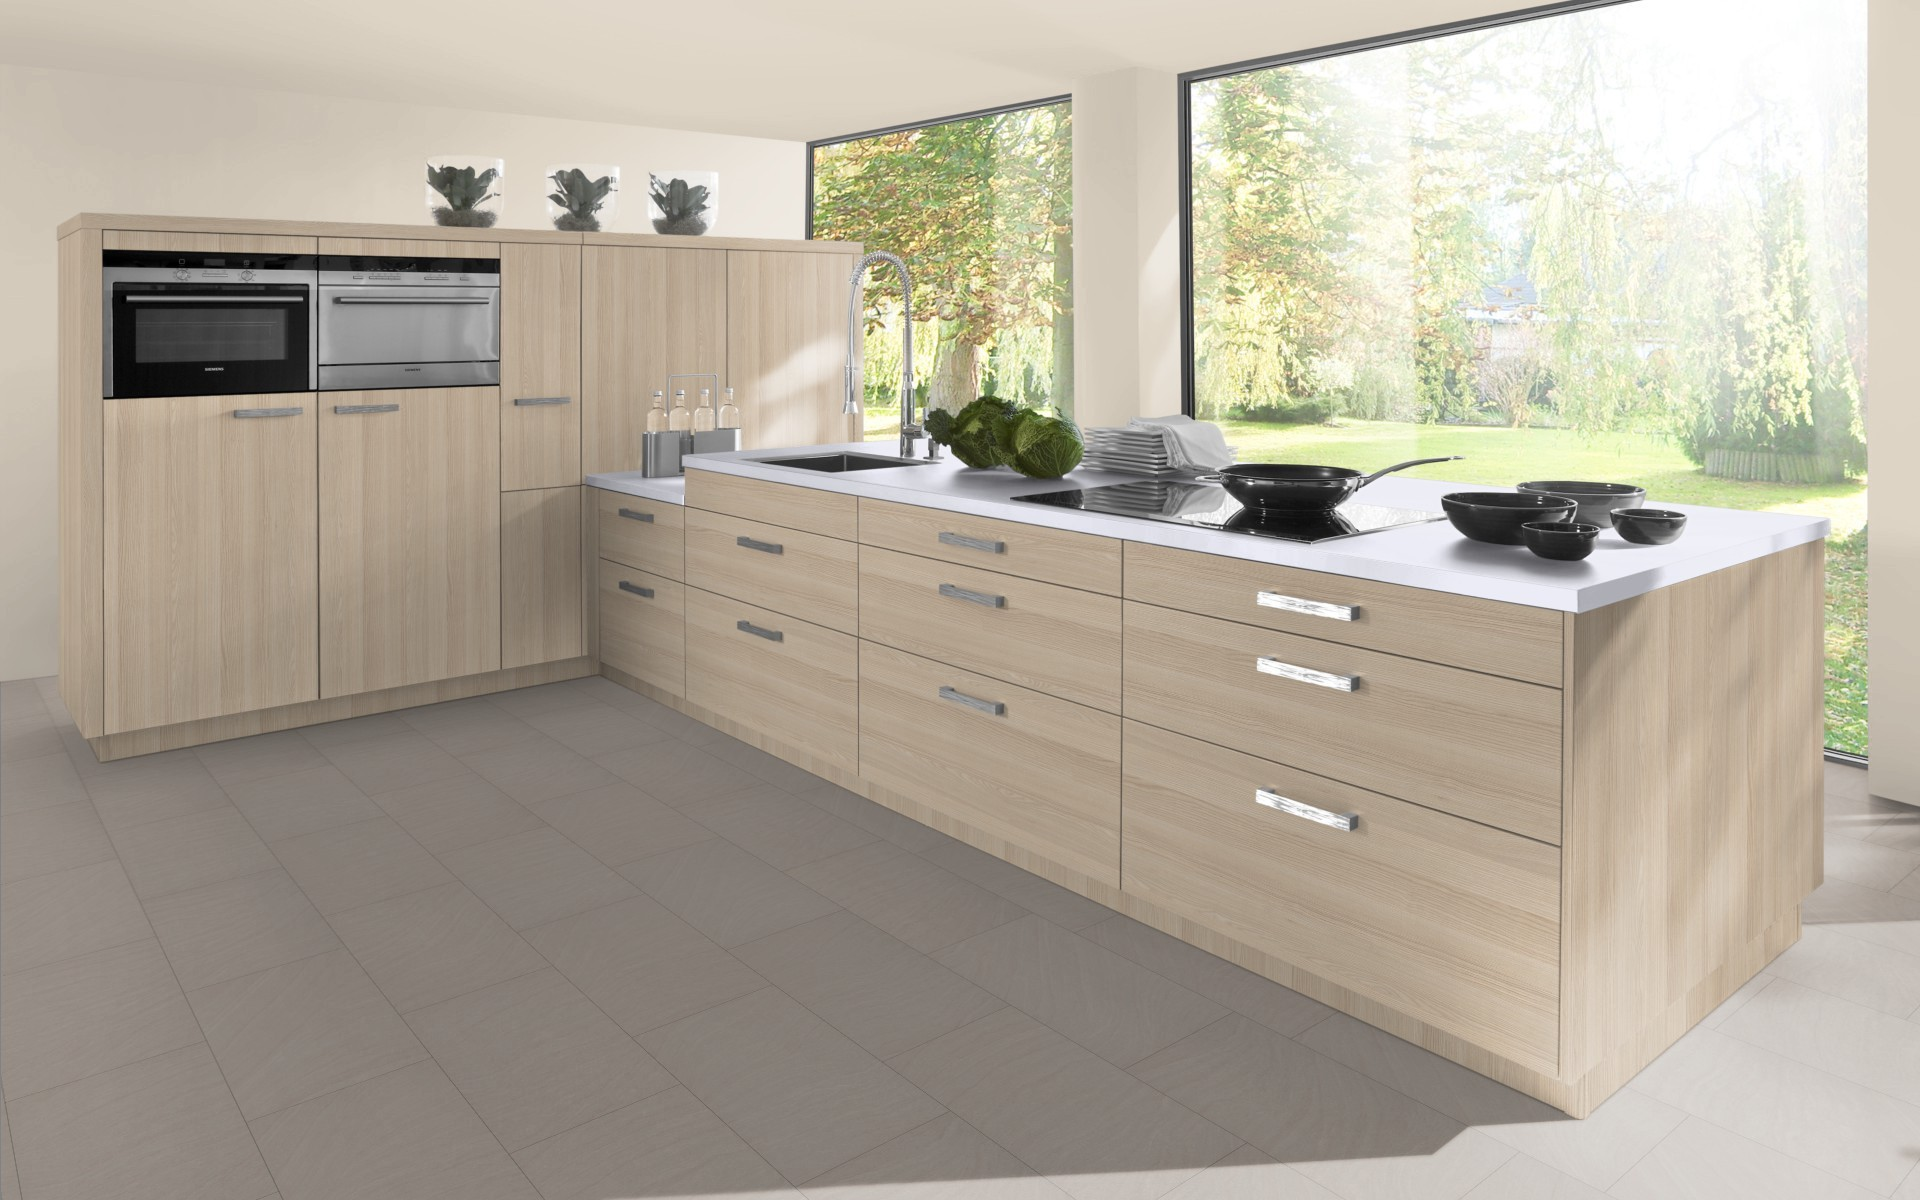 Textured Wood Kitchen Door in Sand Lyon Ash